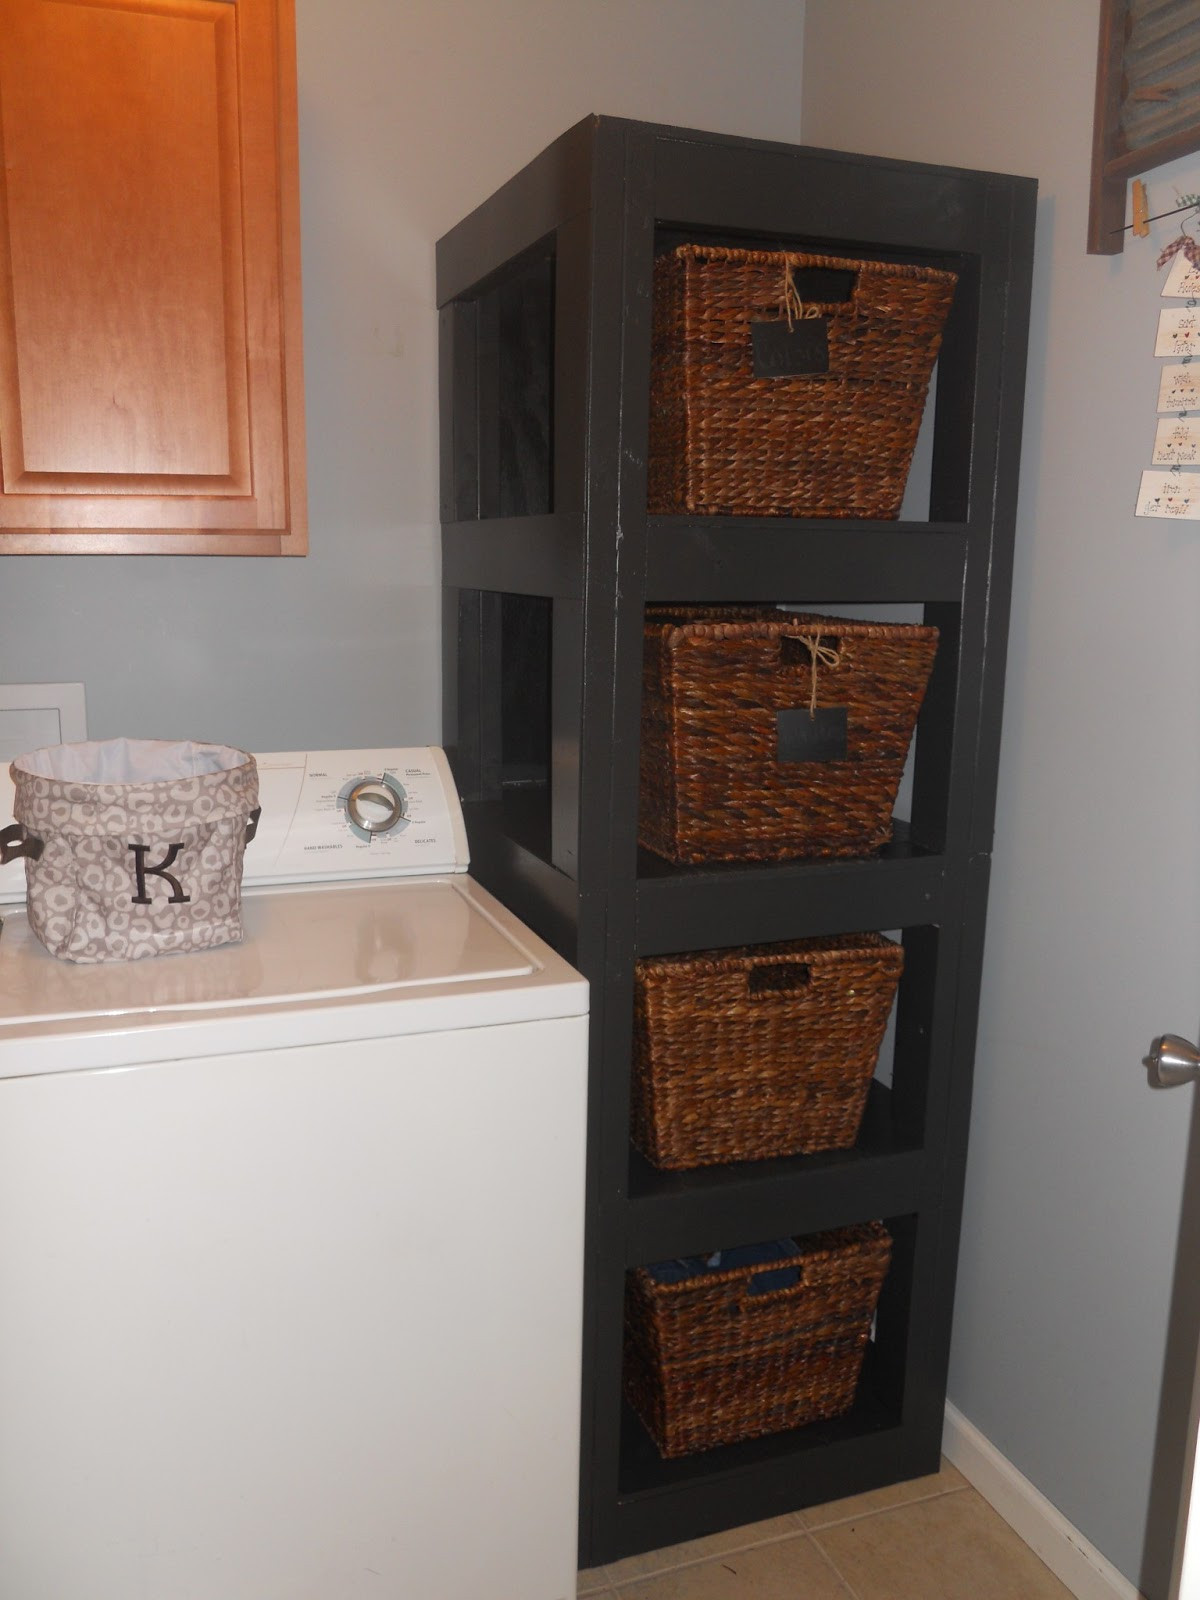 Best ideas about Diy Laundry Room Shelves . Save or Pin My Adventures in Treasure Hunting DIY Laundry Basket Shelf Now.